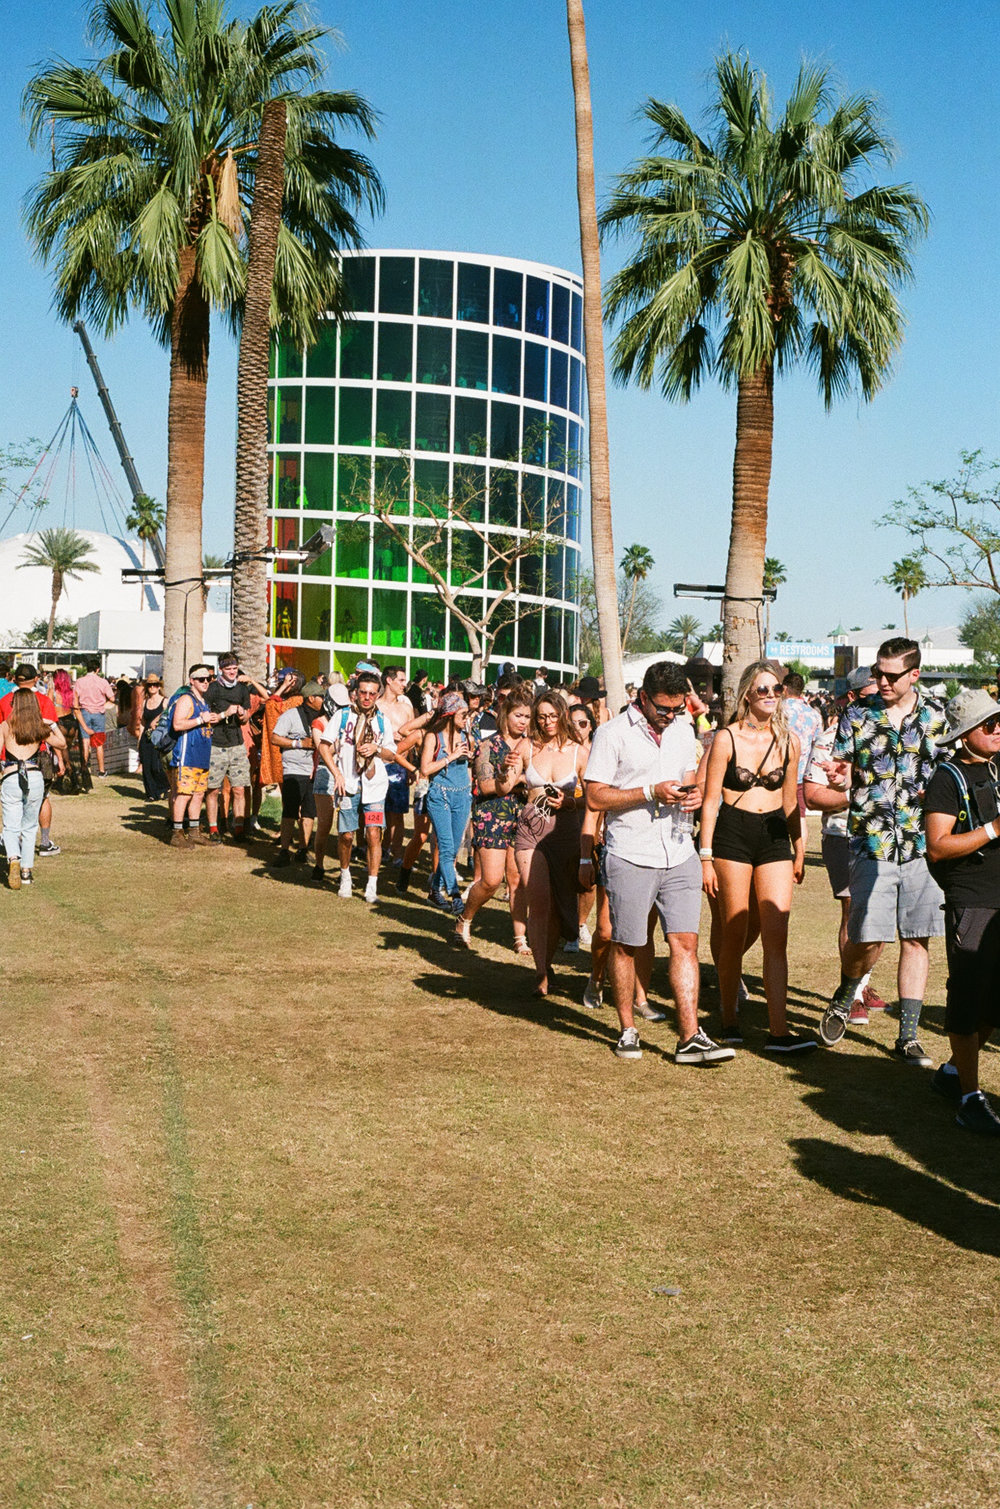 PLNT_MAG_COACHELLA_PHOTOS_42.JPG